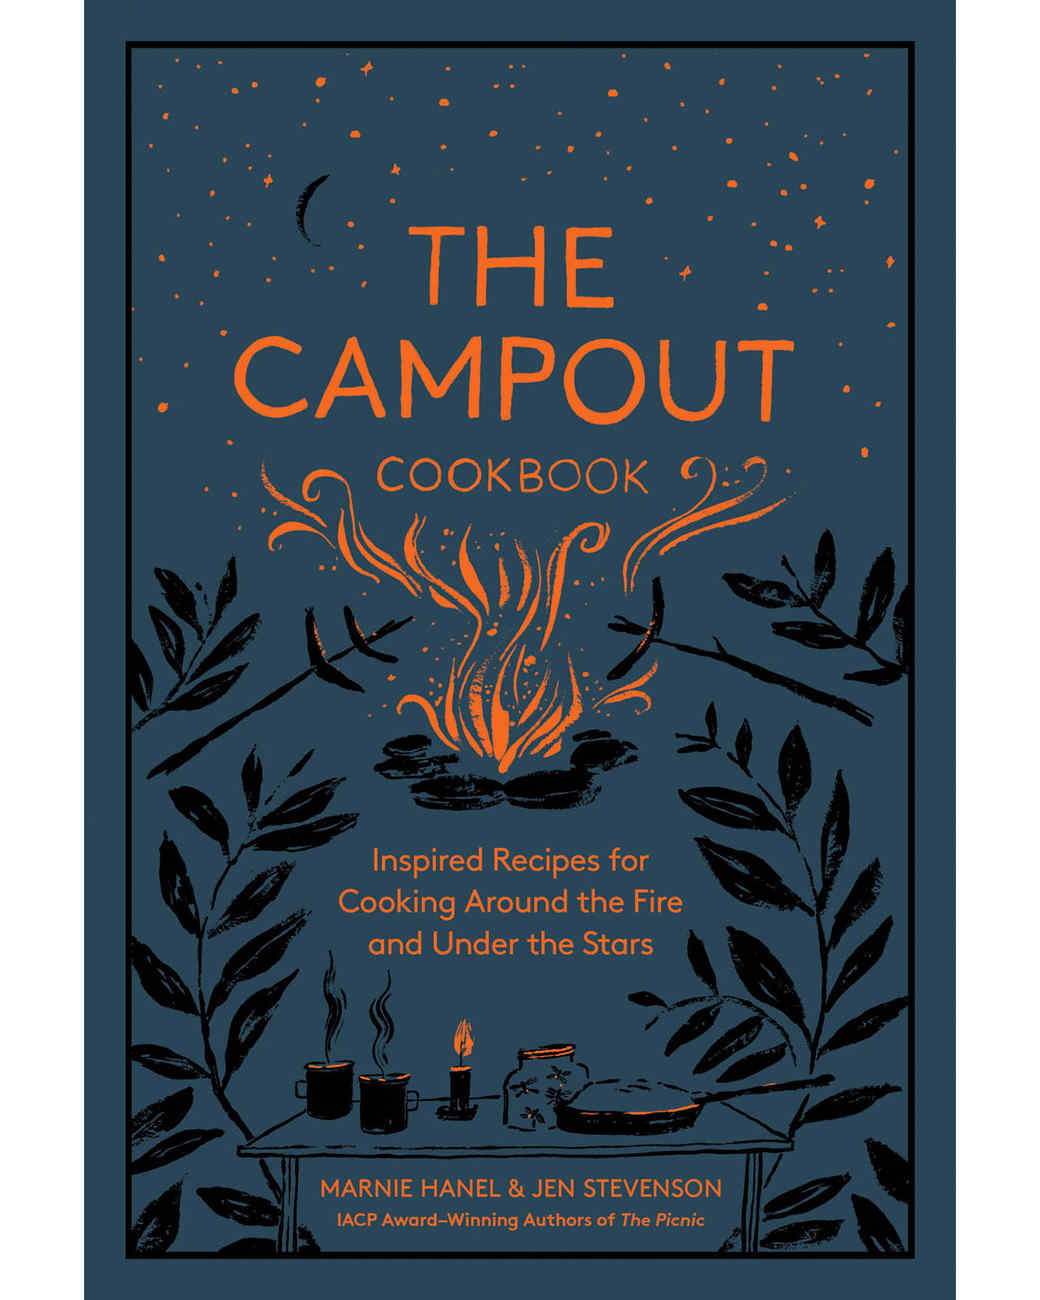 the campout cookbook cover